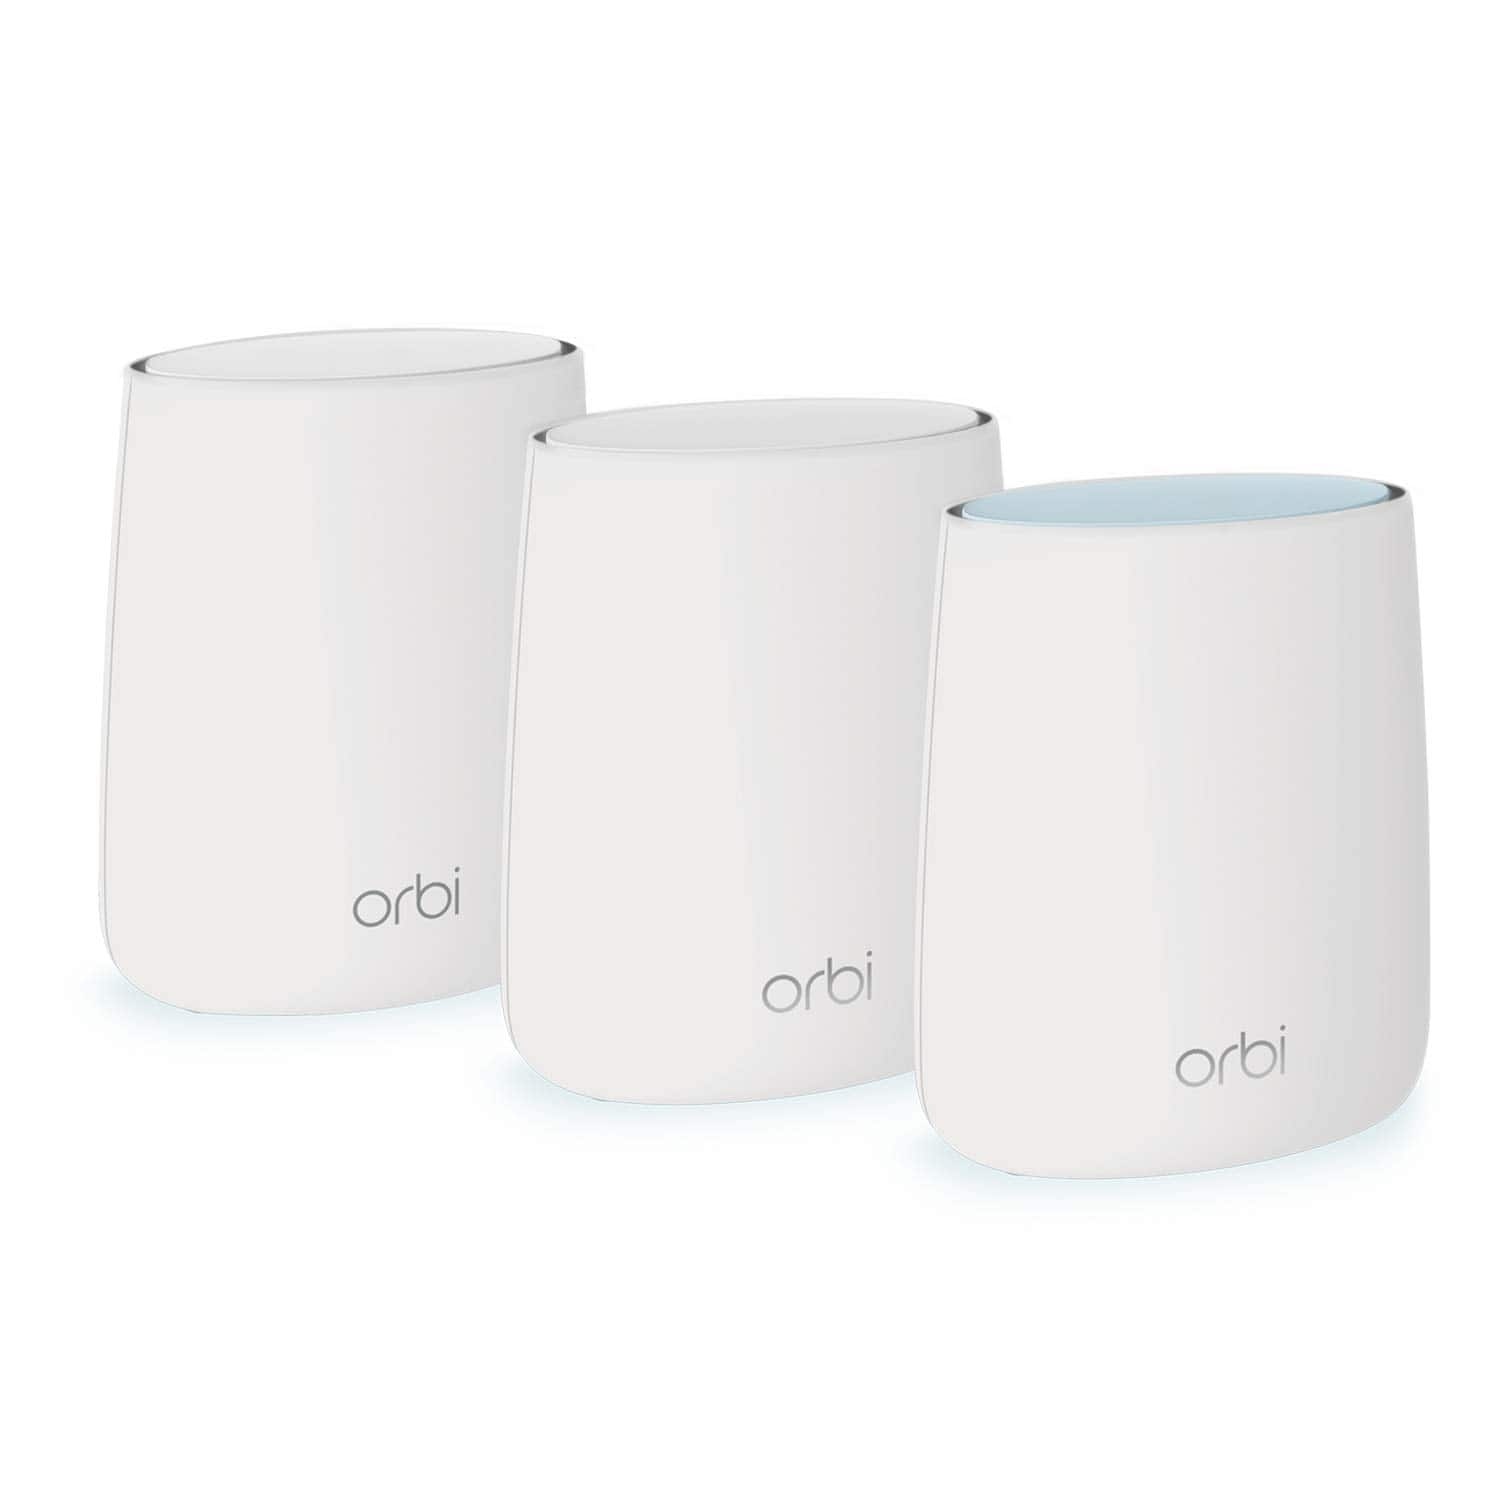 NETGEAR Orbi Tri-band Whole Home Mesh WiFi System with 2.2Gbps speed (RBK23) - 113.38 + tax $113.38